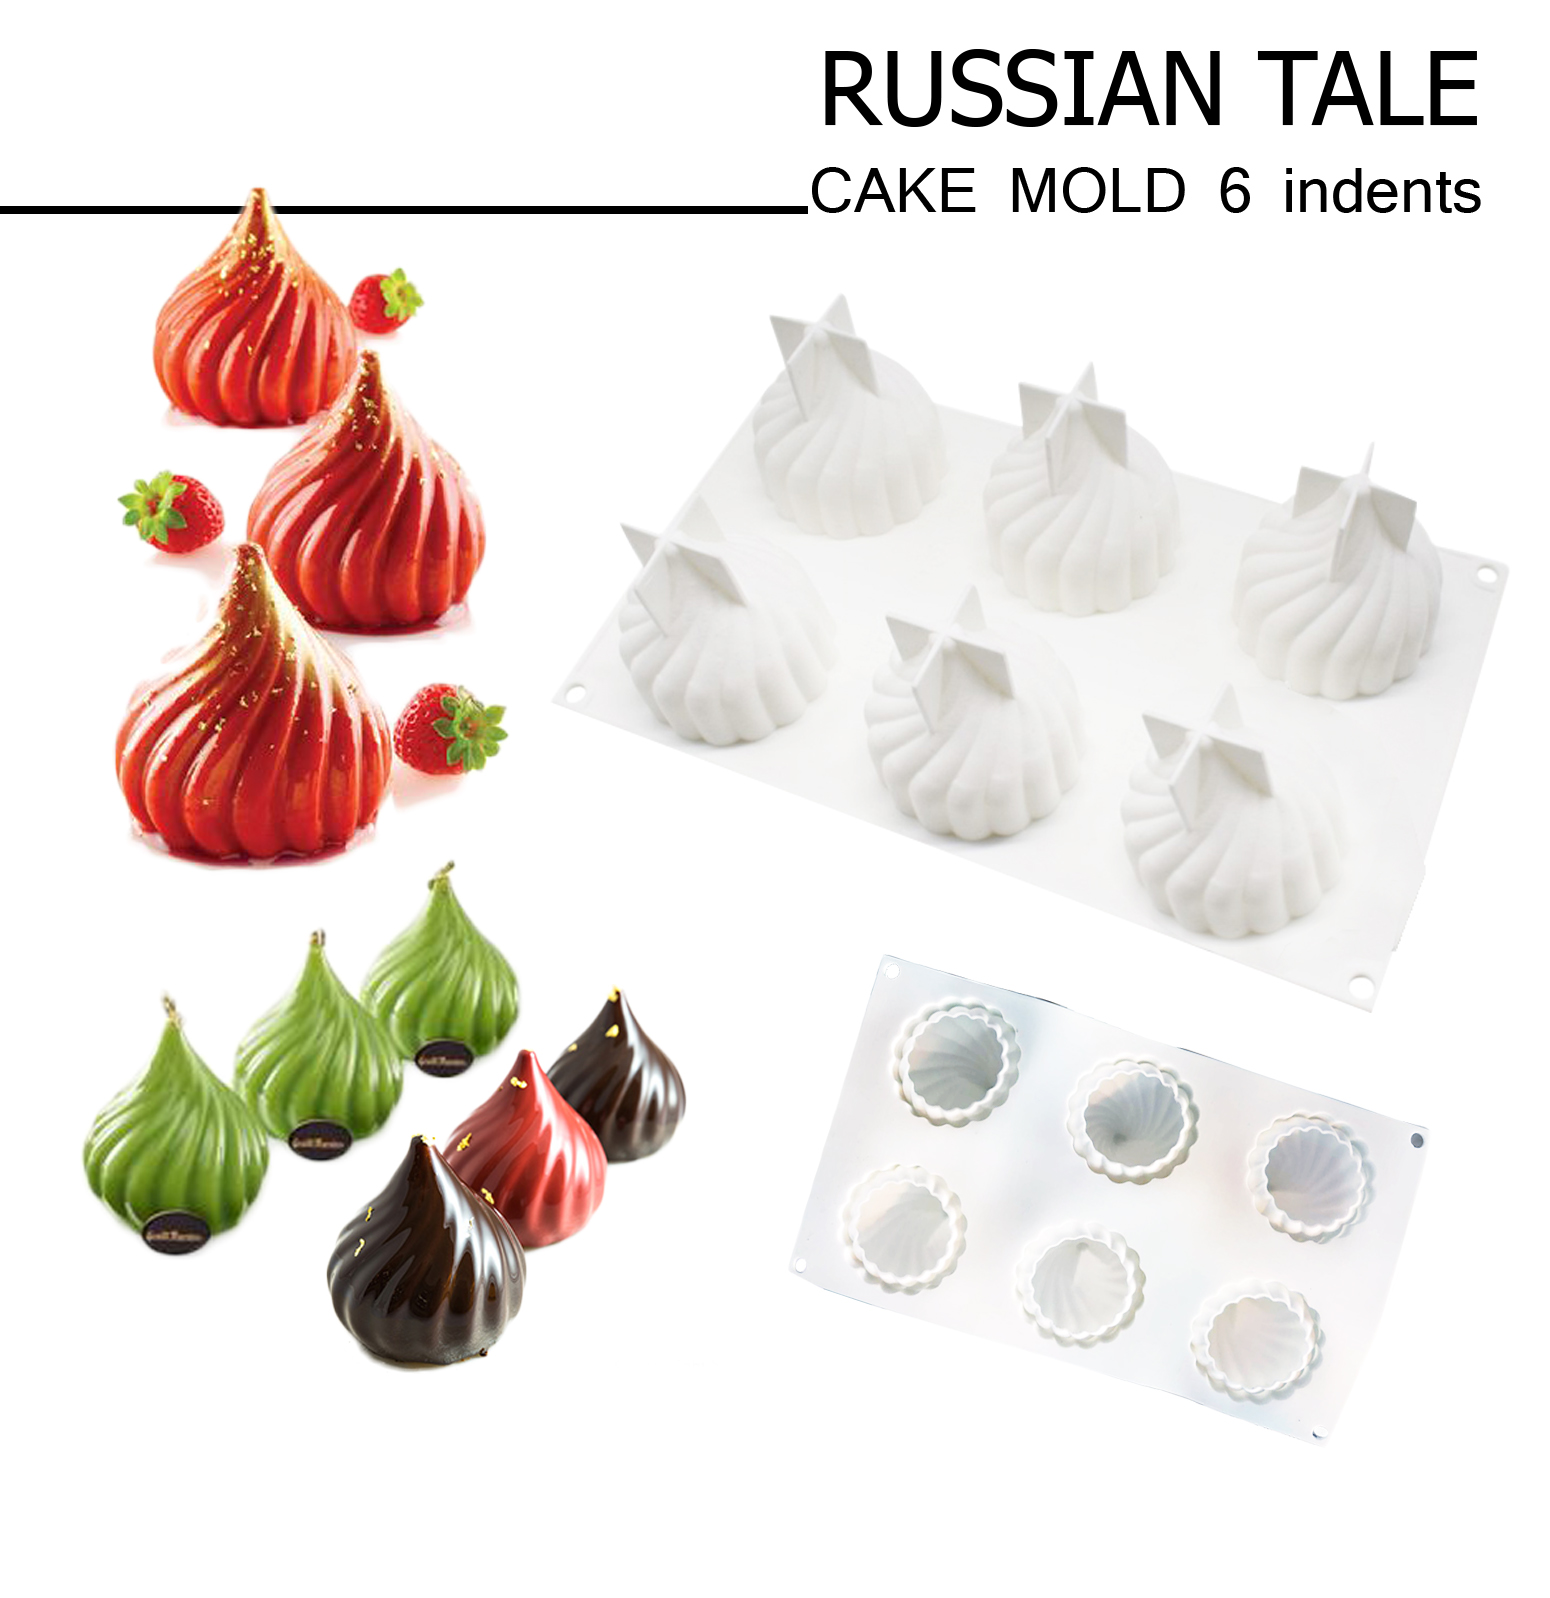 Russian tale CAKE MOLD 6 indents